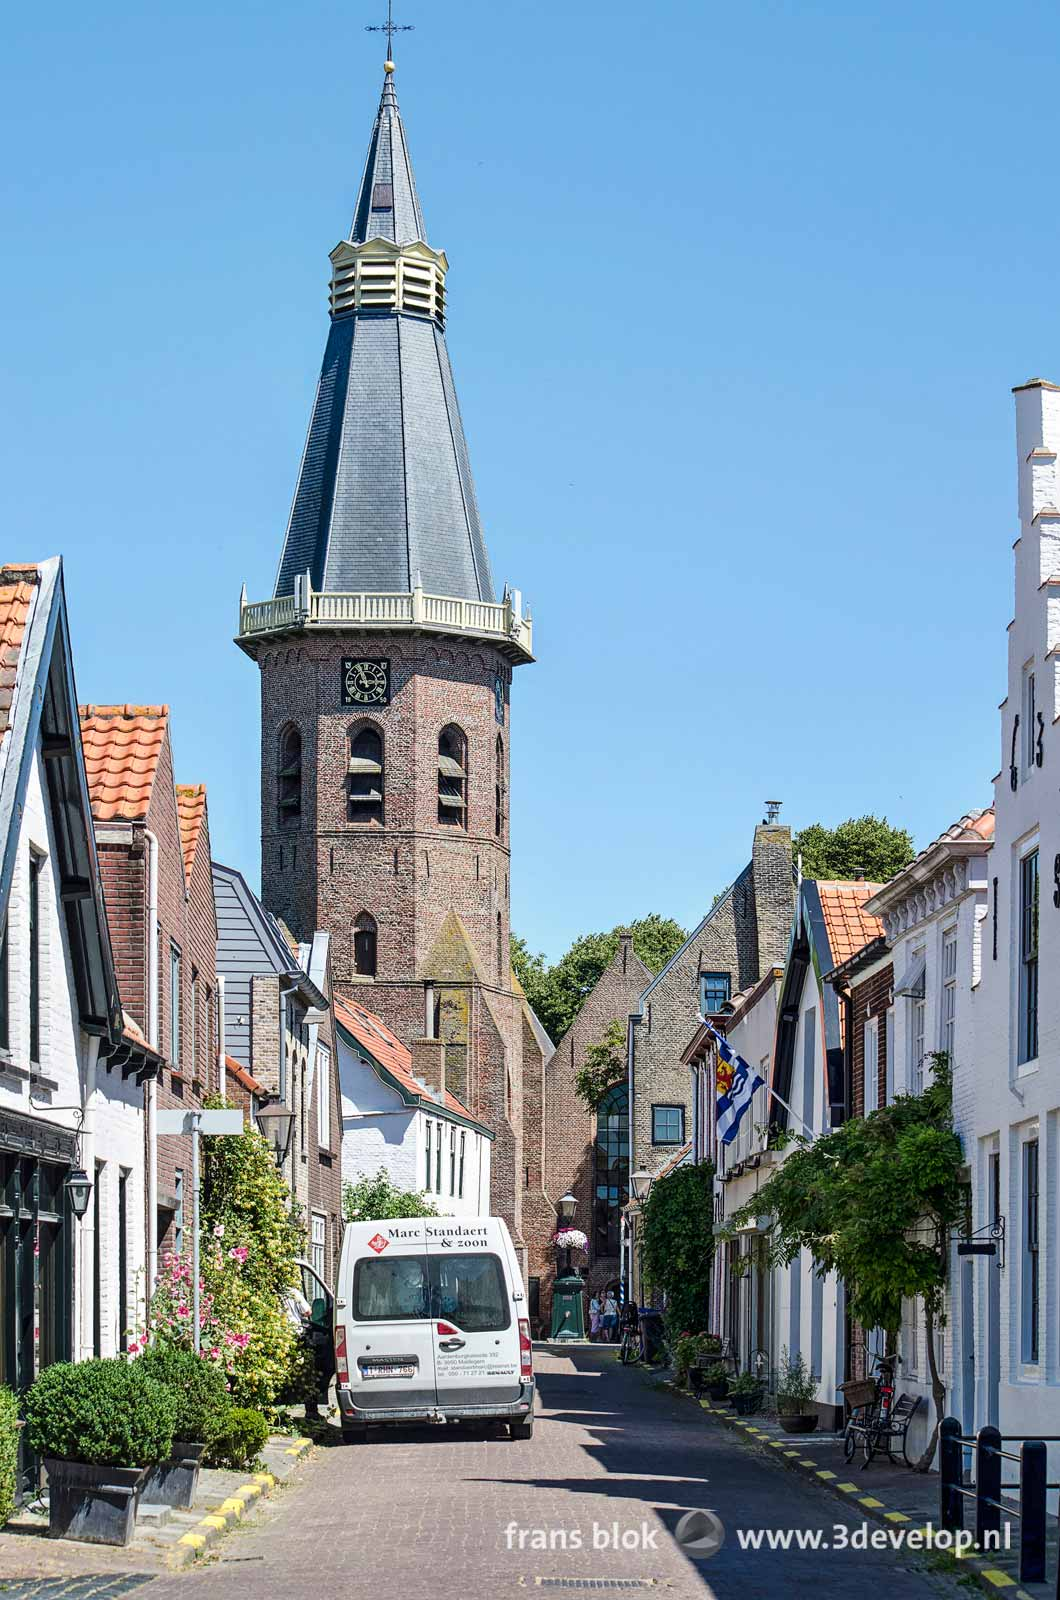 Street leading to the church in Groede in the Netherlands (almost Belgium) with a disfiguring white van in the middle of the picture